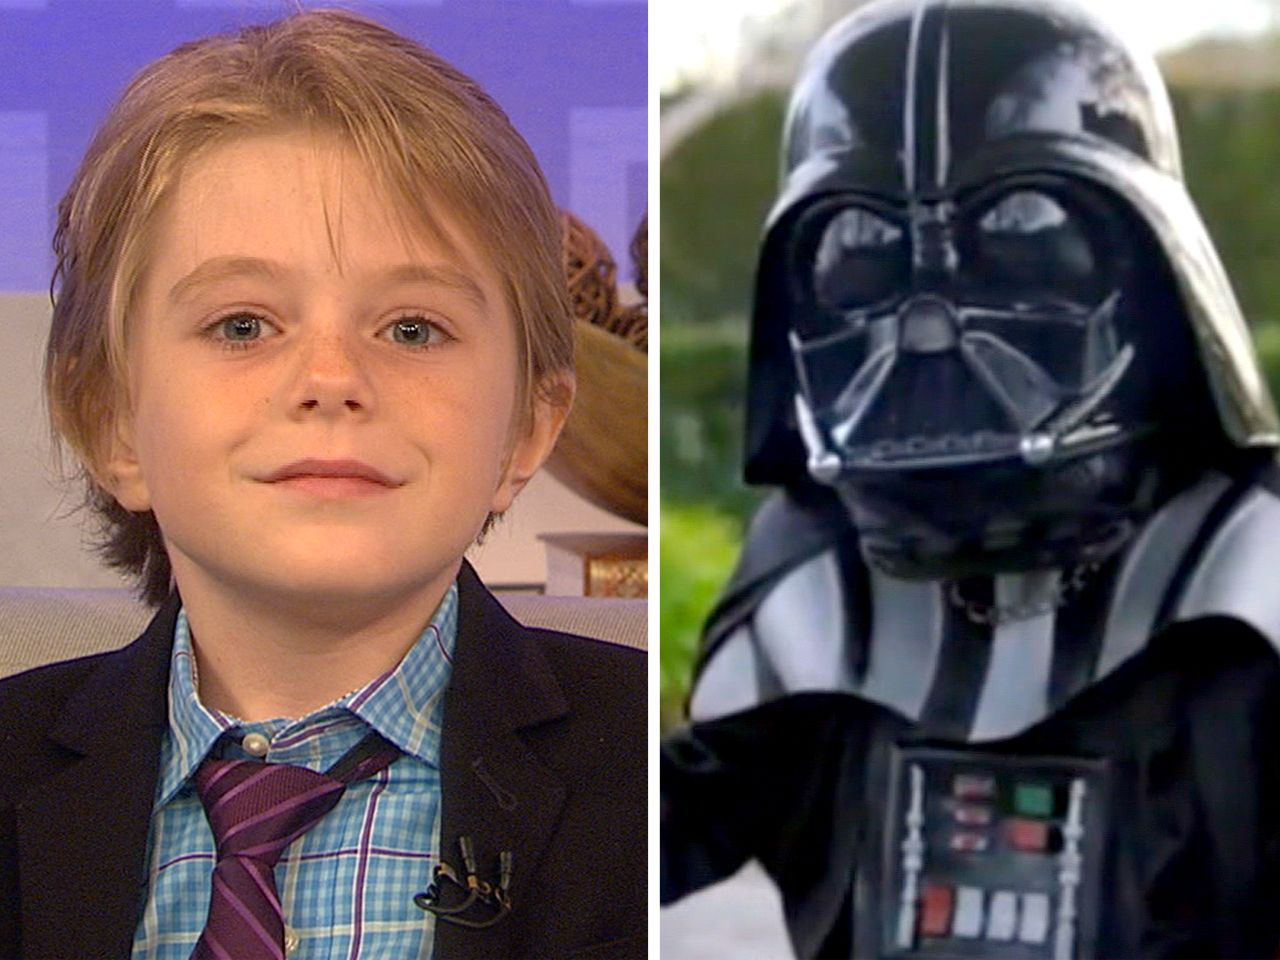 'Little Darth Vader': 'My heart feels better now'